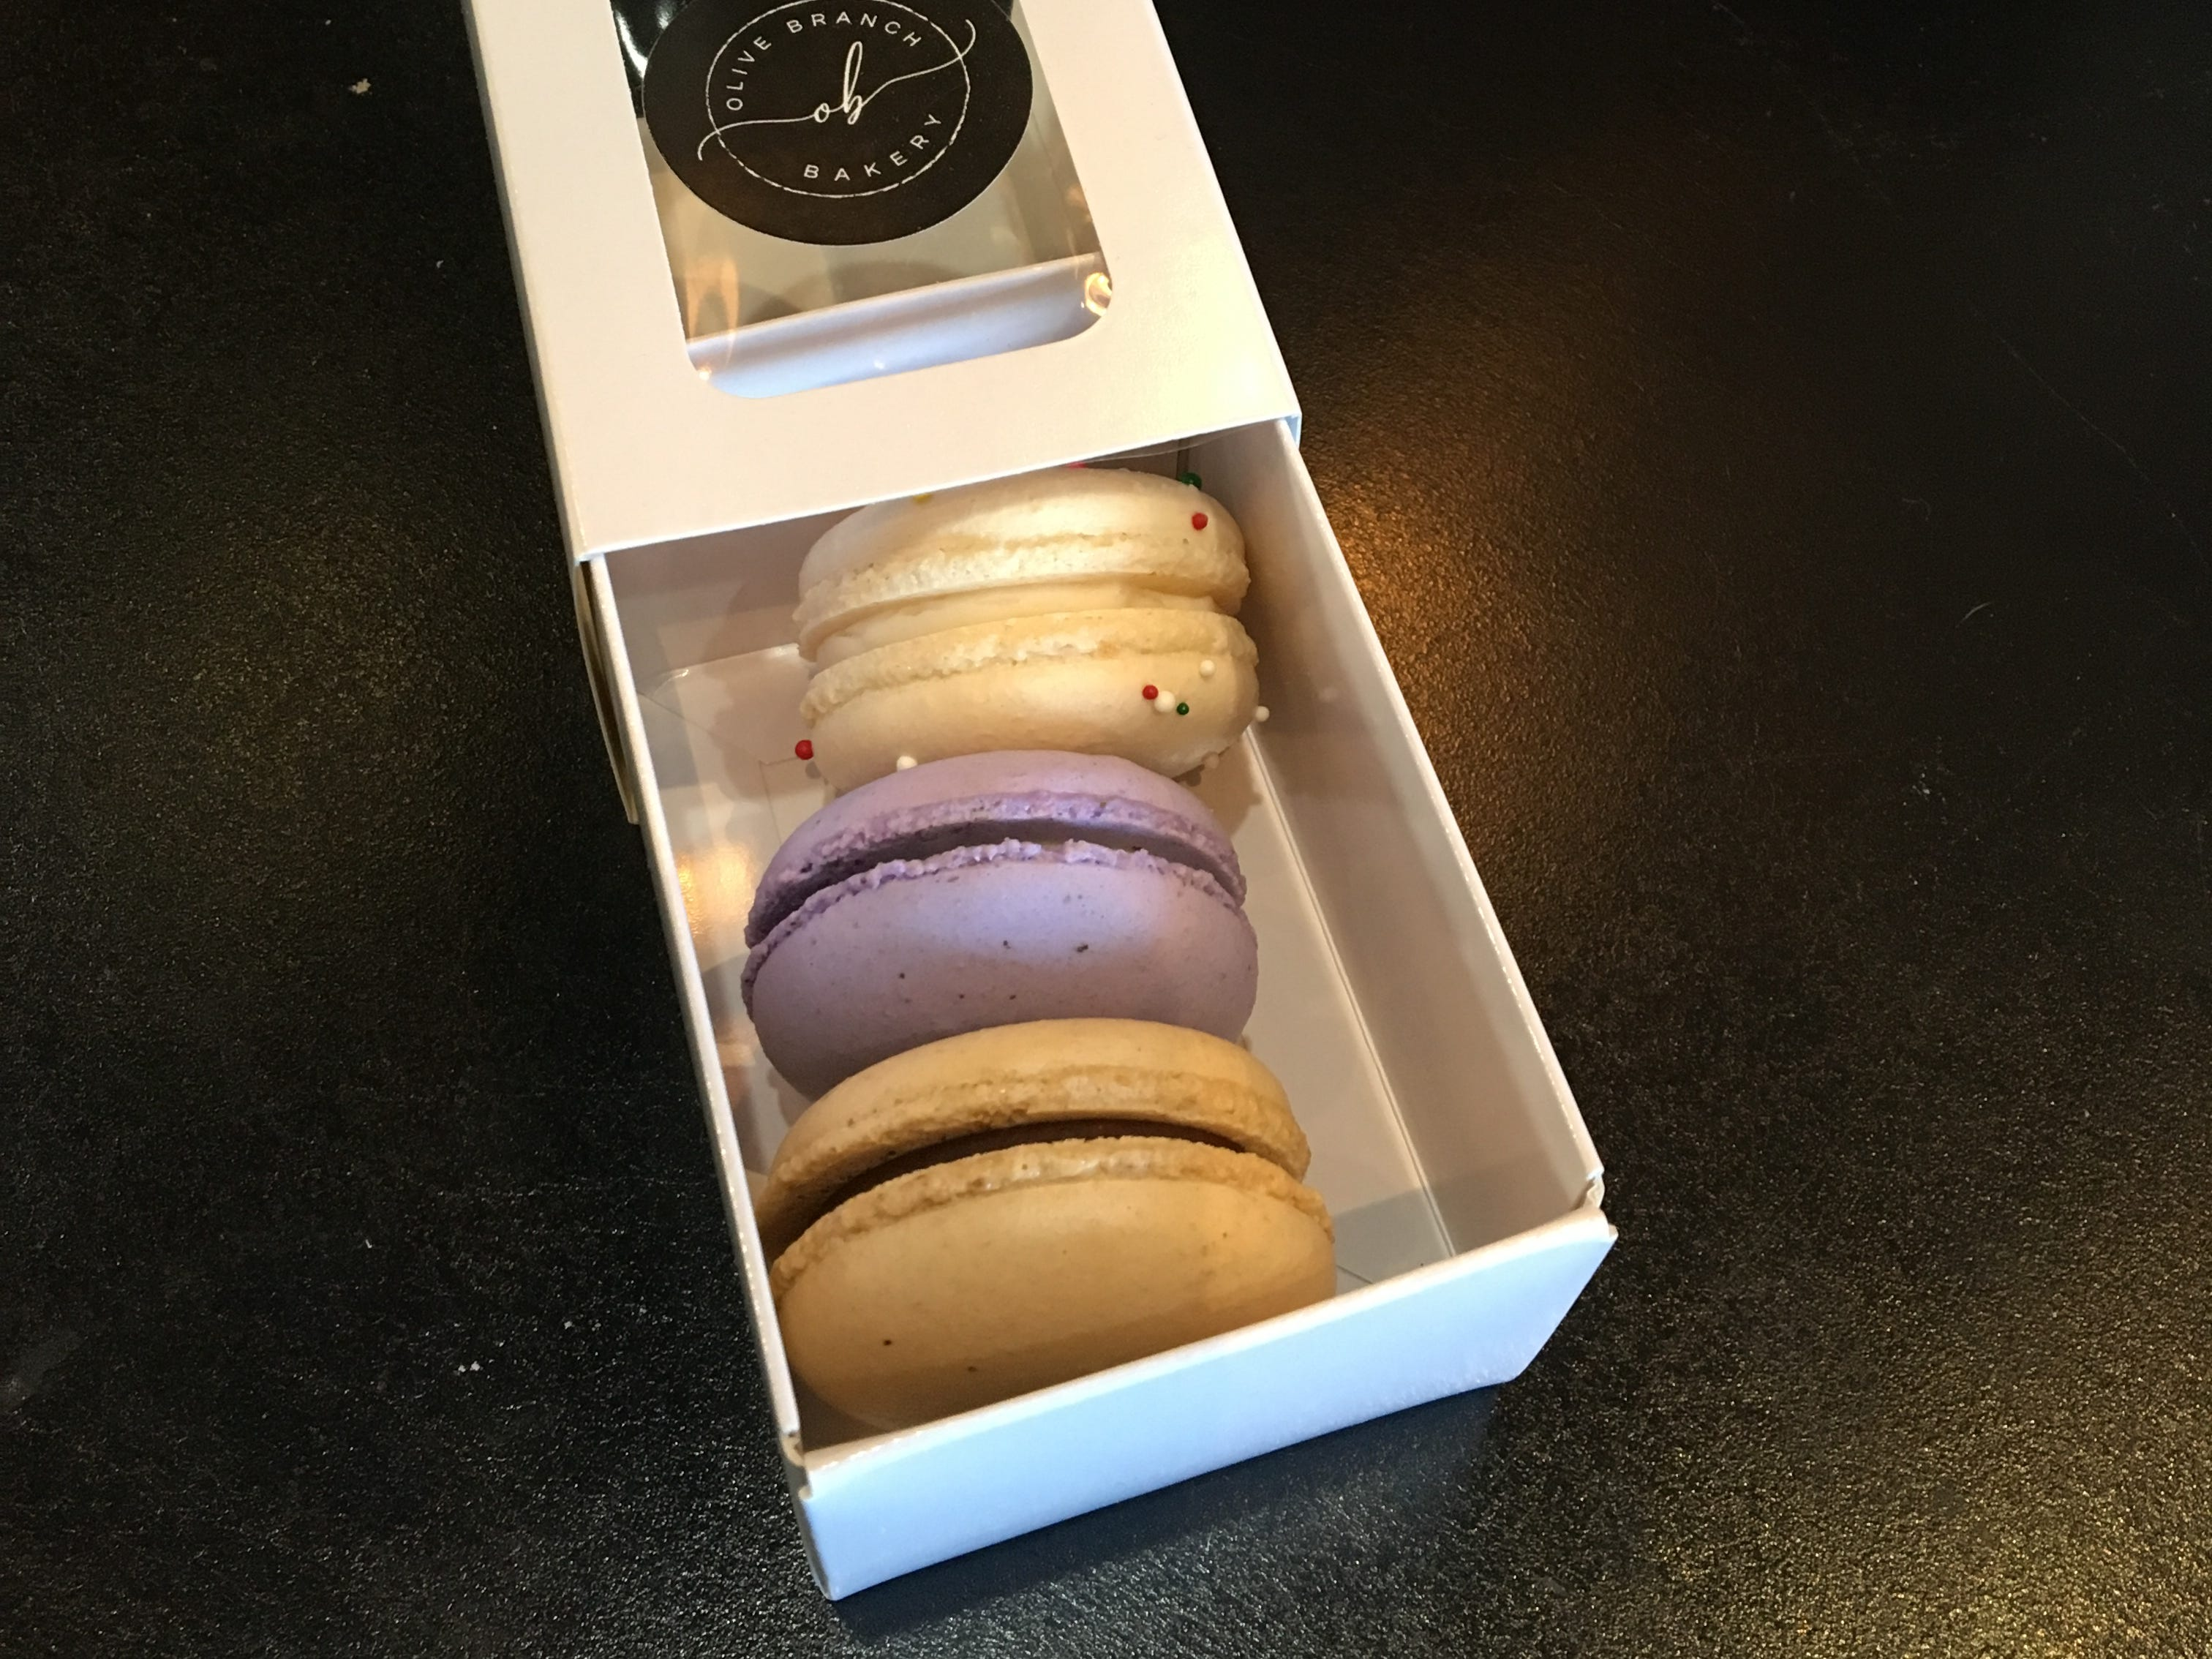 French macarons are a specialty of Olive Branch Bakery owner Jacqueline Edwards.